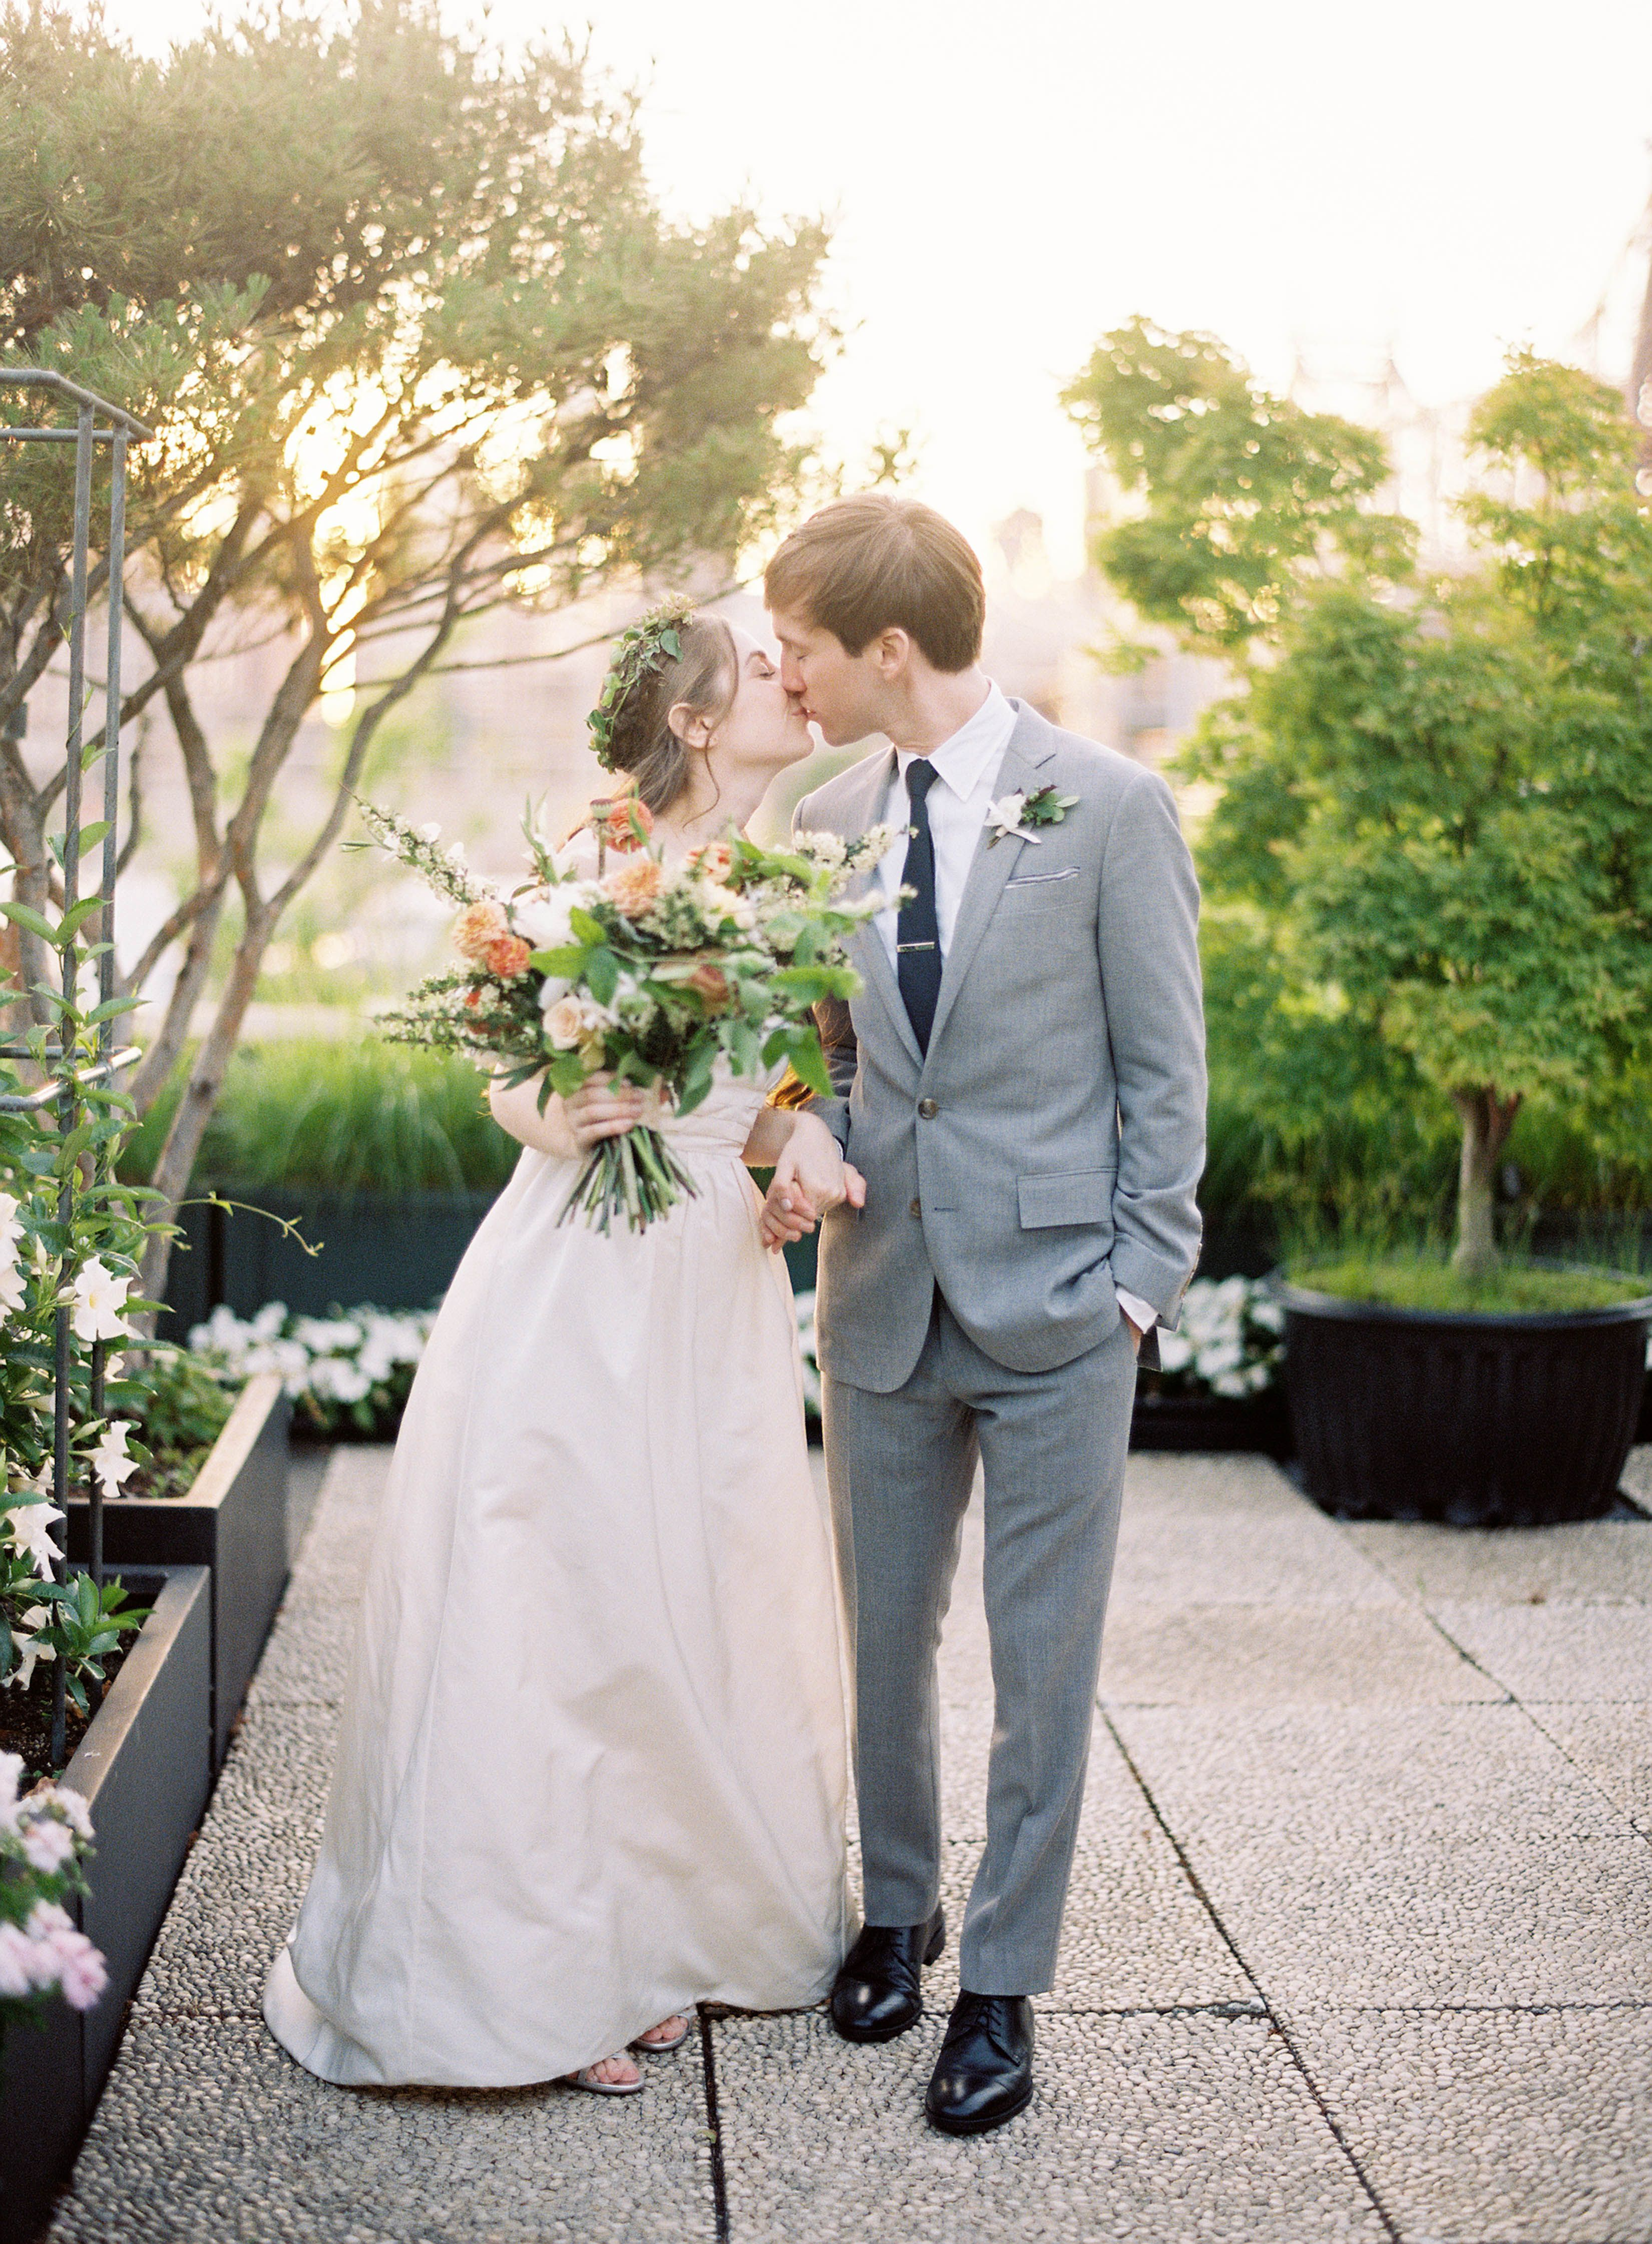 Modern NYC Wedding at The Foundry   photography by http://www.jenhuangphoto.com